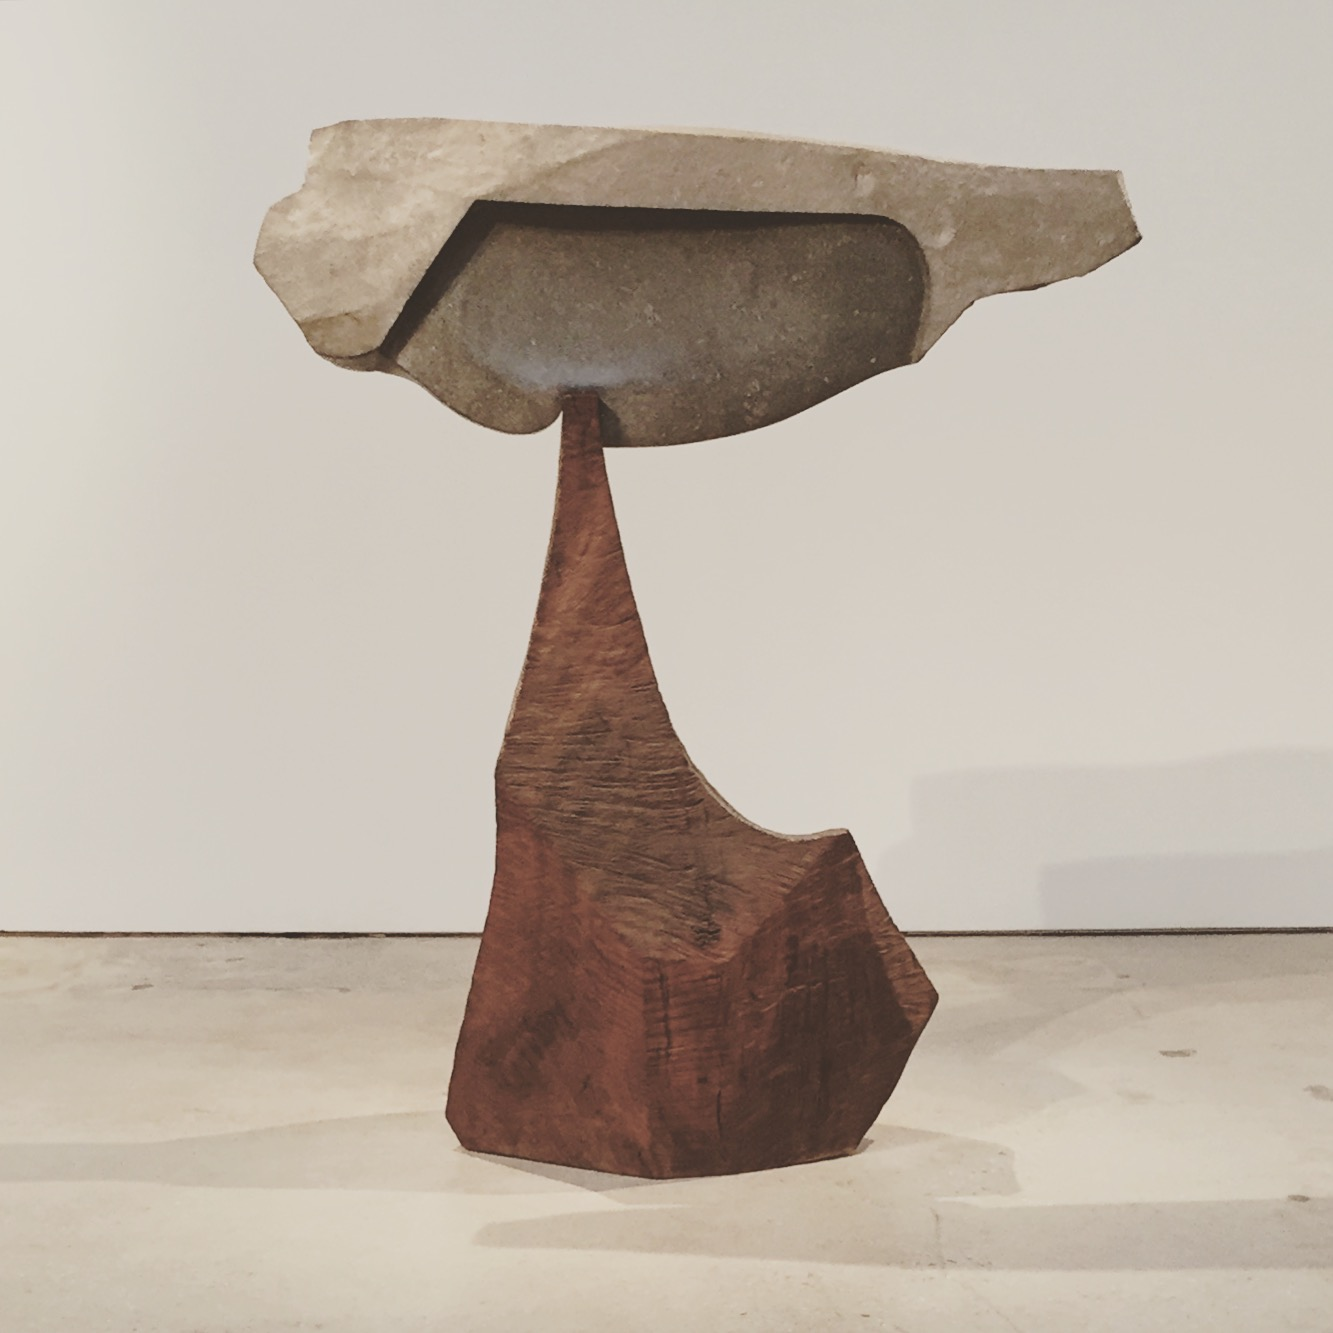 JB Blunk Graduated From UCLA In 1949 Where He Studied Ceramics After Serving The Korean War Traveled To Japan Met Isamu Noguchi Which